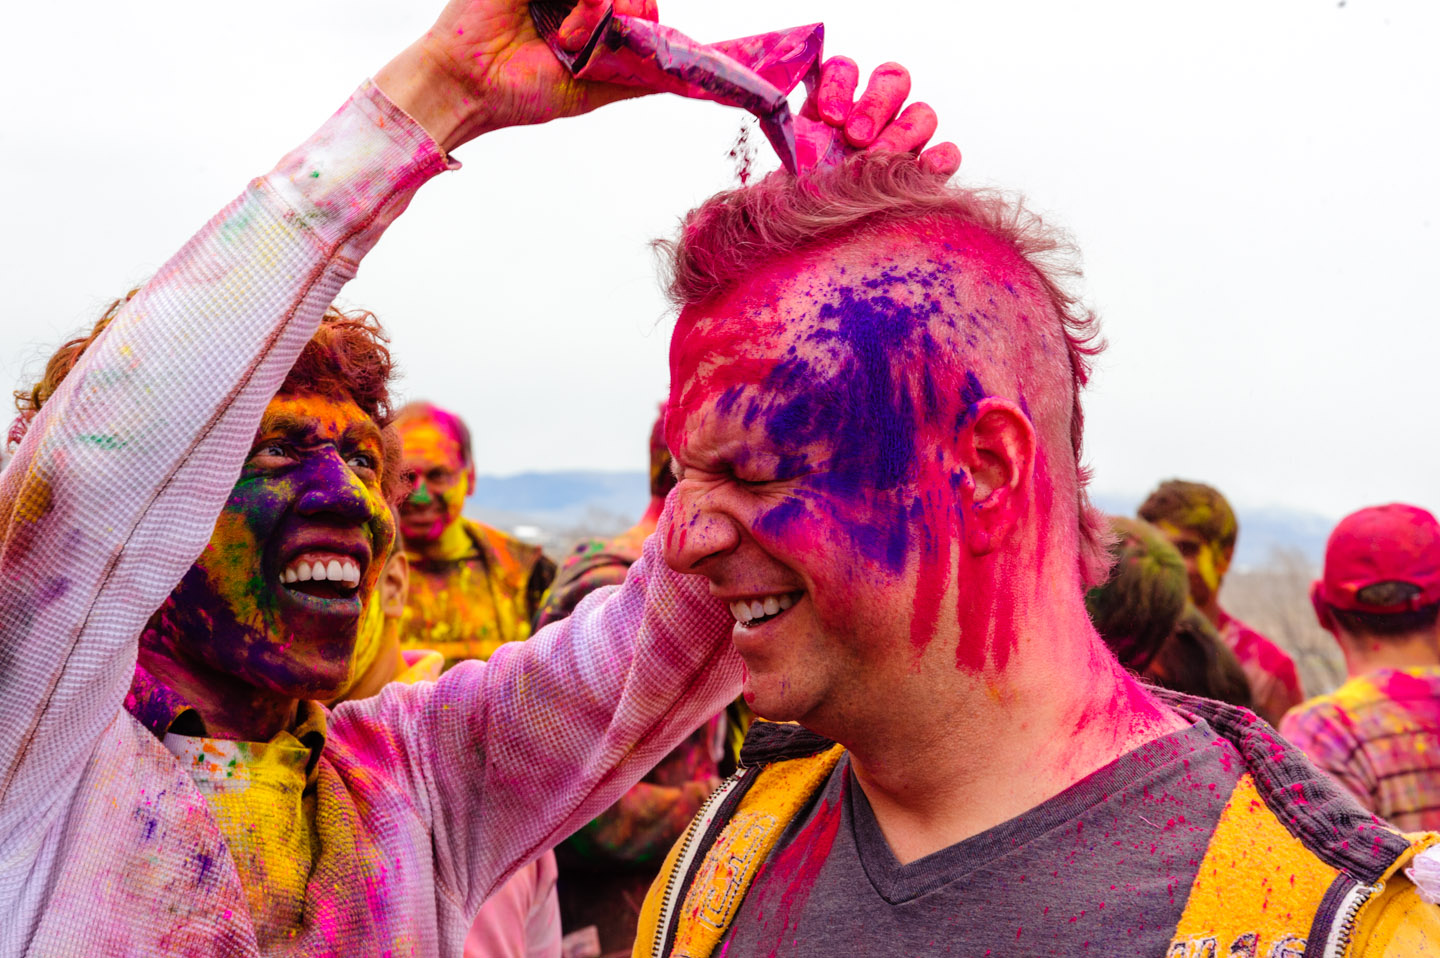 dav.d at the Holi Color Festival photographed by Jarvie